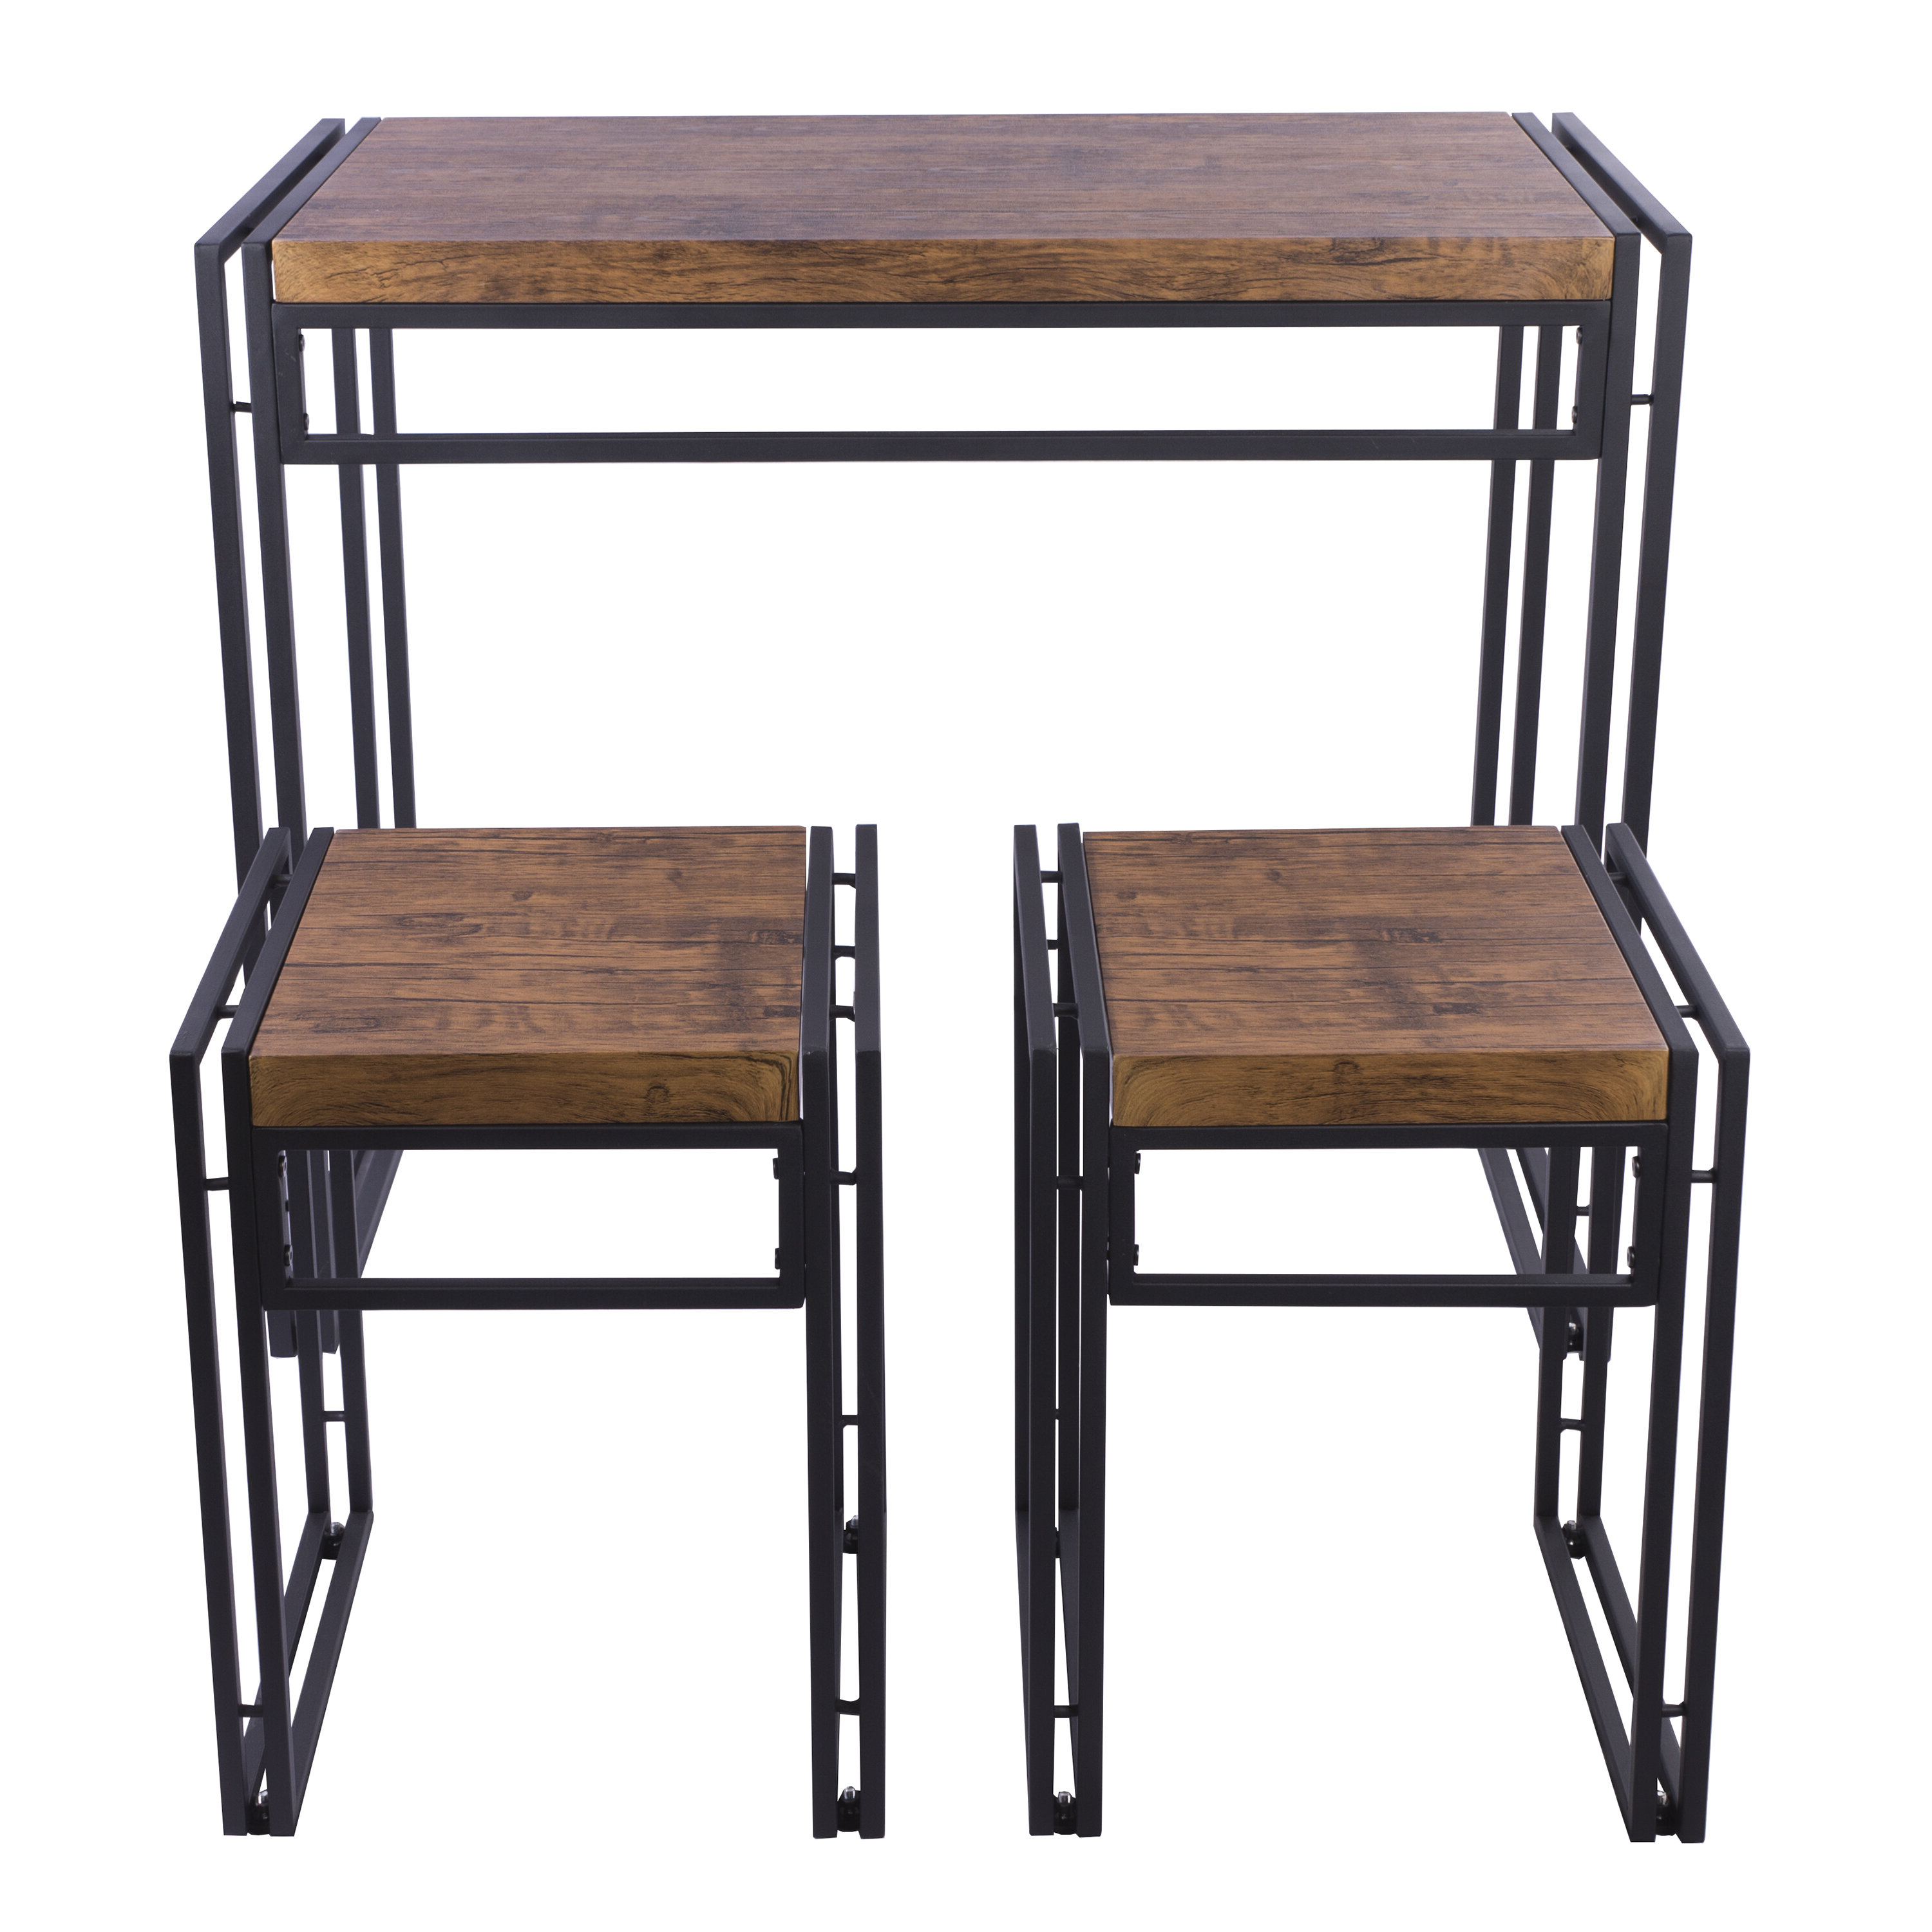 Popular Williston Forge Debby Small Space 3 Piece Dining Set Within Ryker 3 Piece Dining Sets (View 6 of 20)